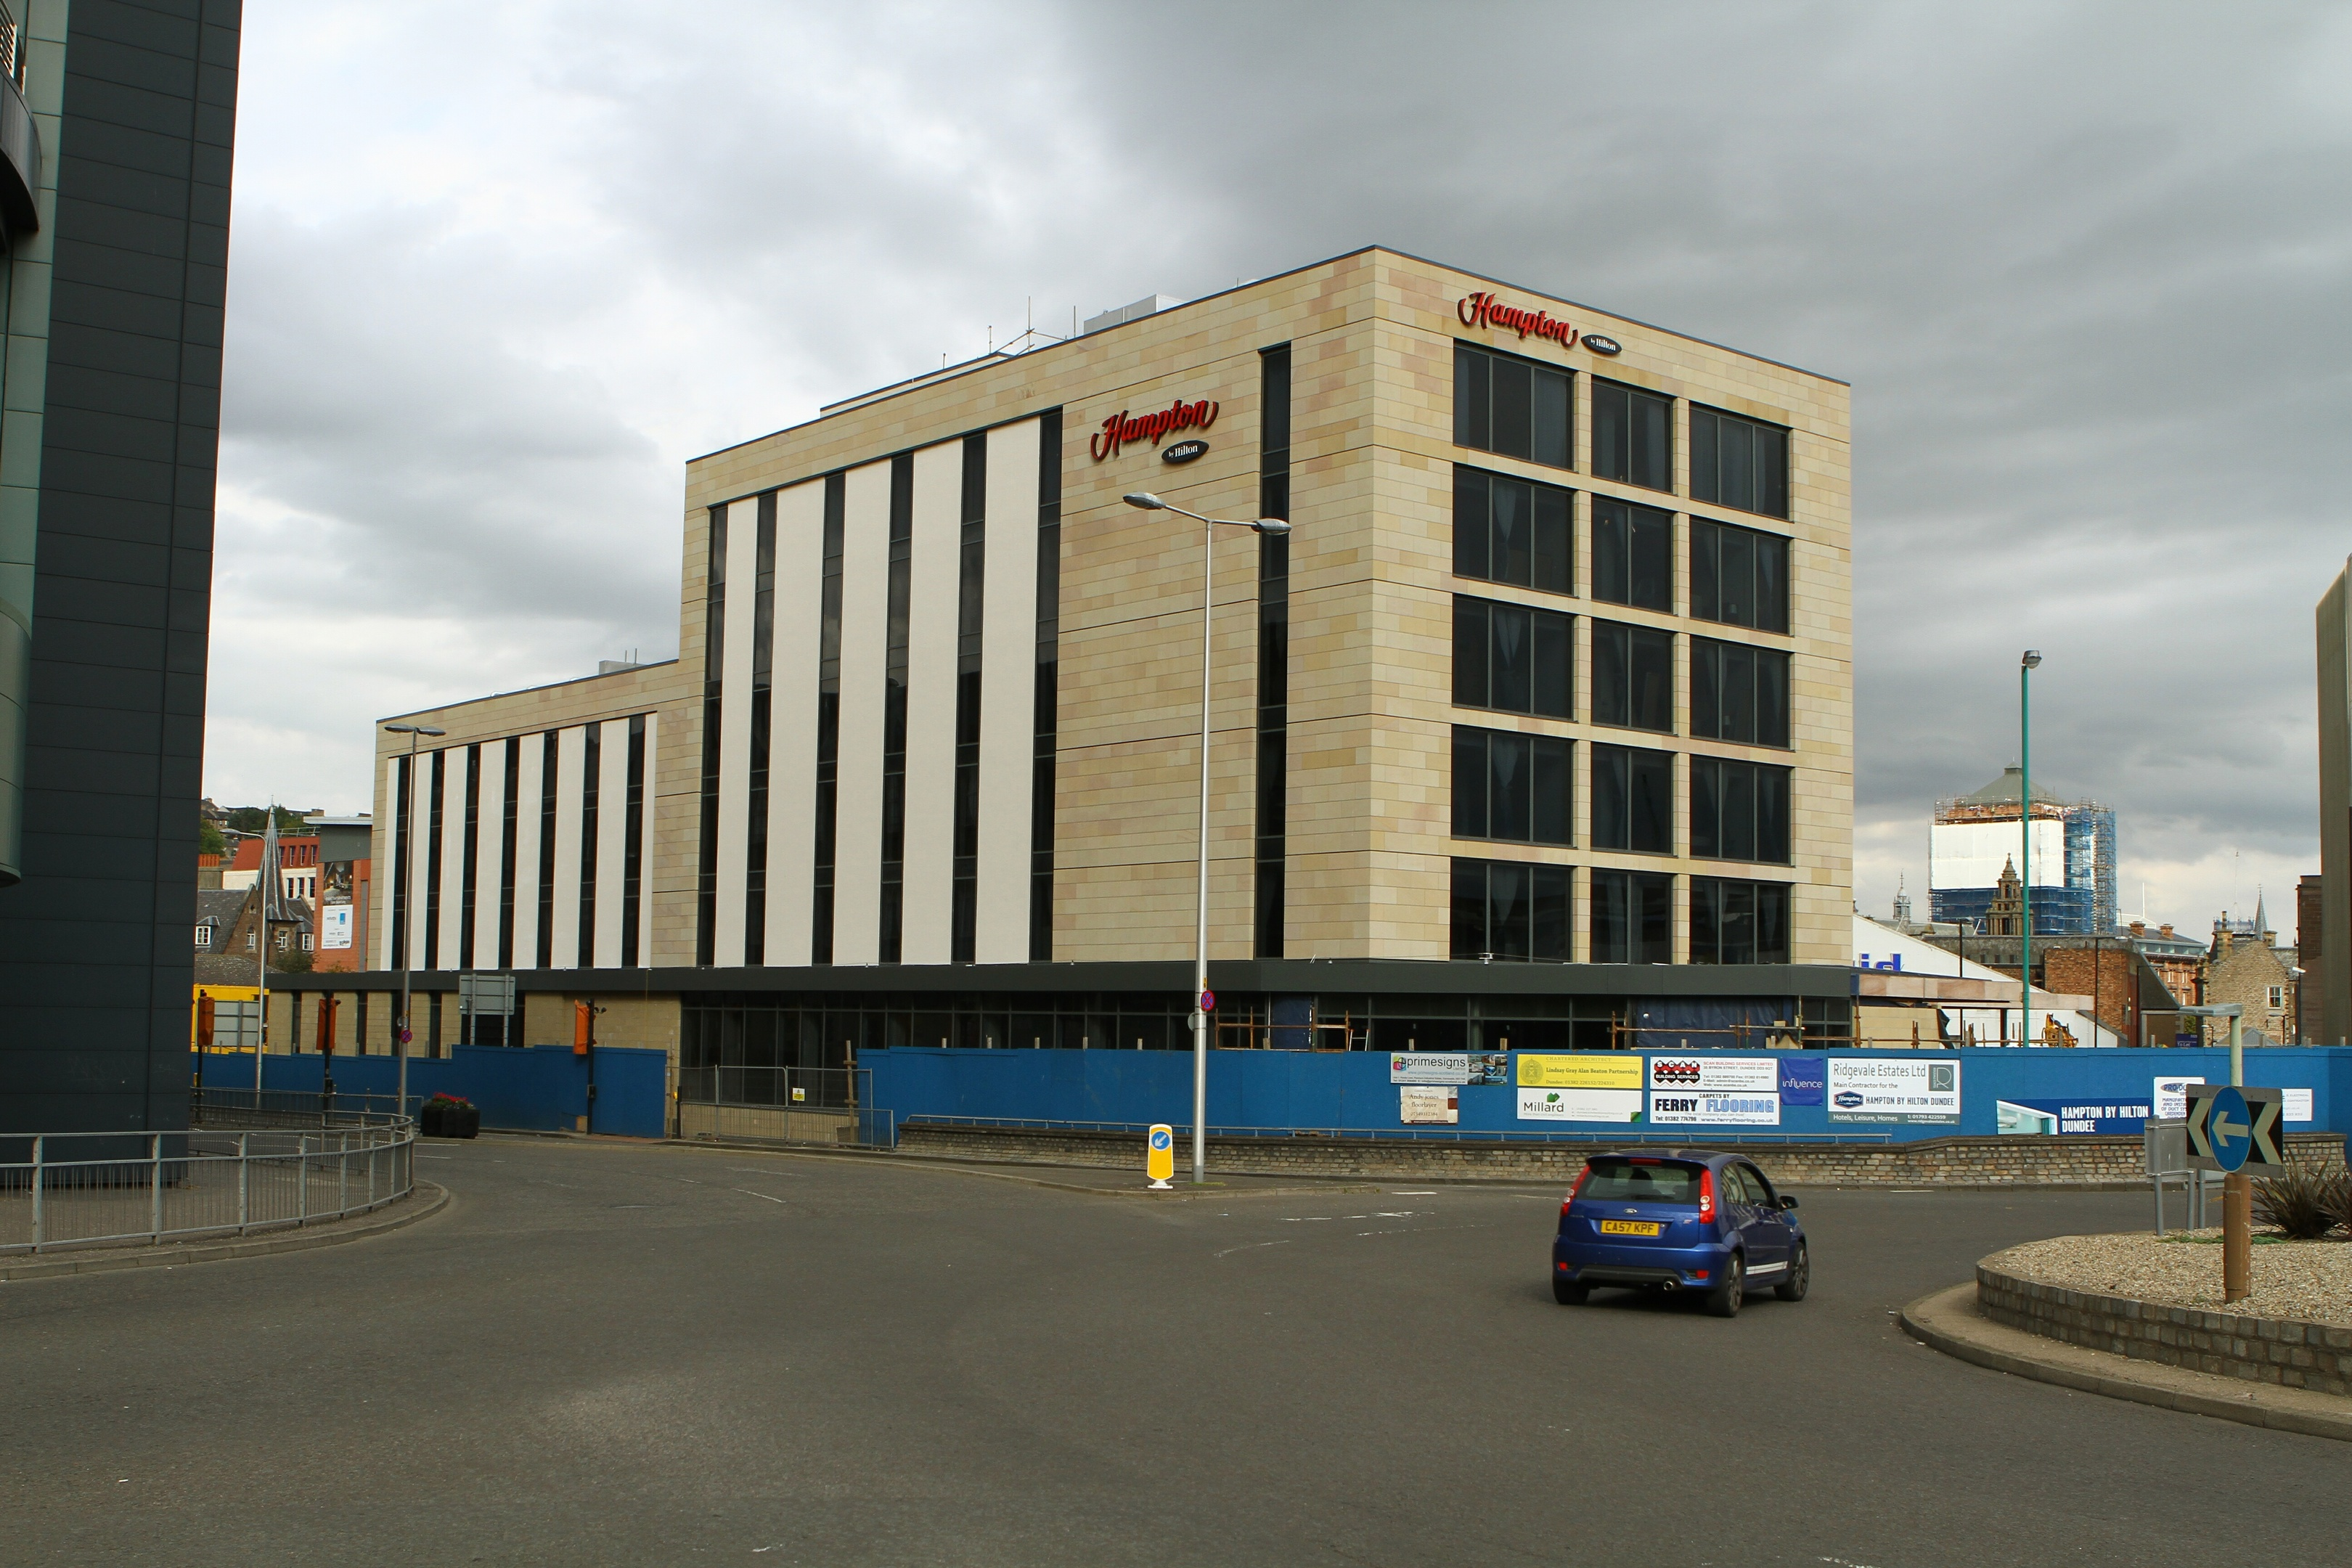 Hampton by Hilton at West Marketgait